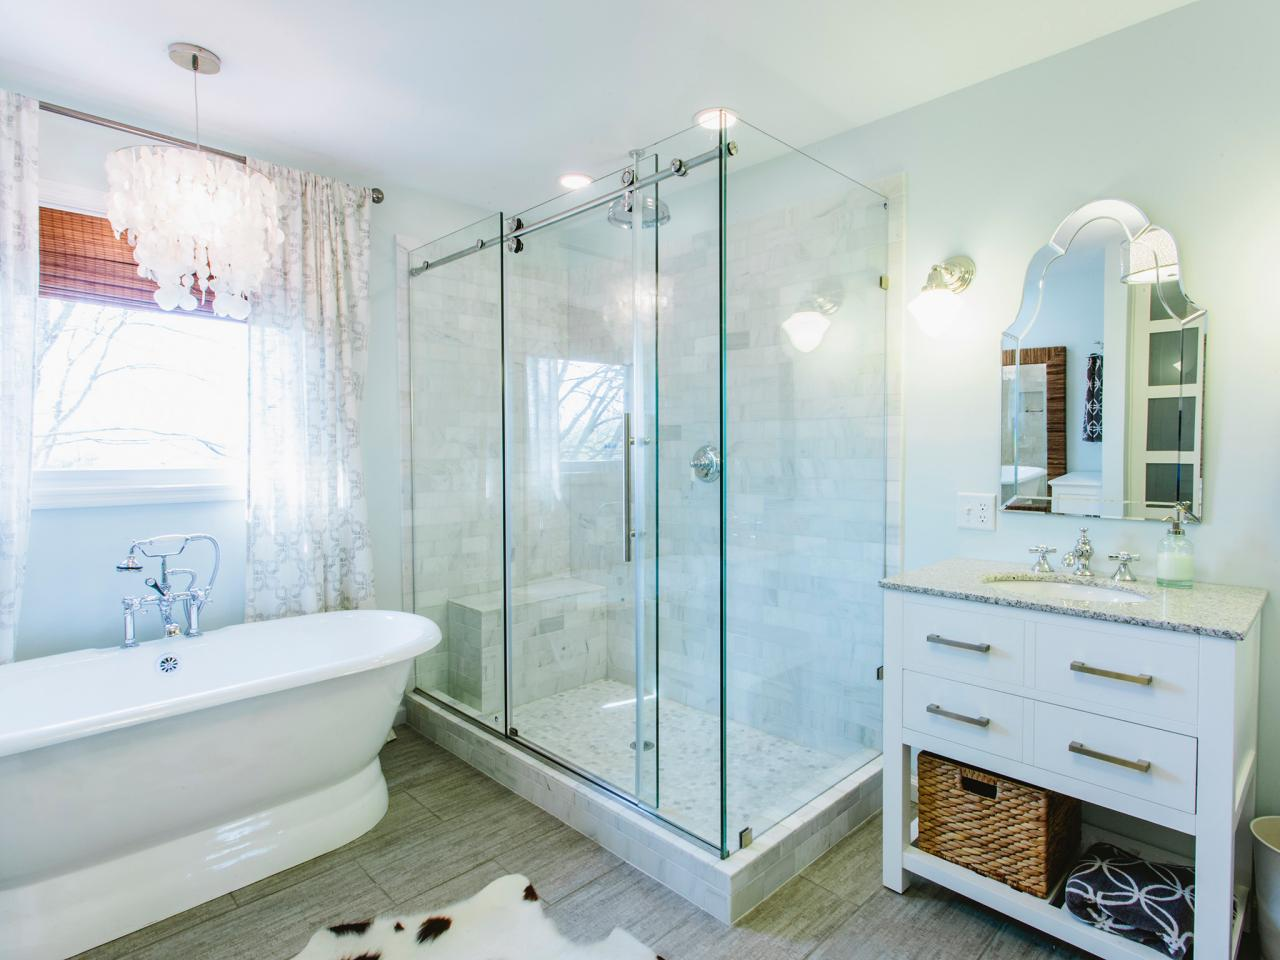 Tips And Tricks For Planning A Bathroom Remodel Sweet Parrish Place - How to plan a bathroom remodel